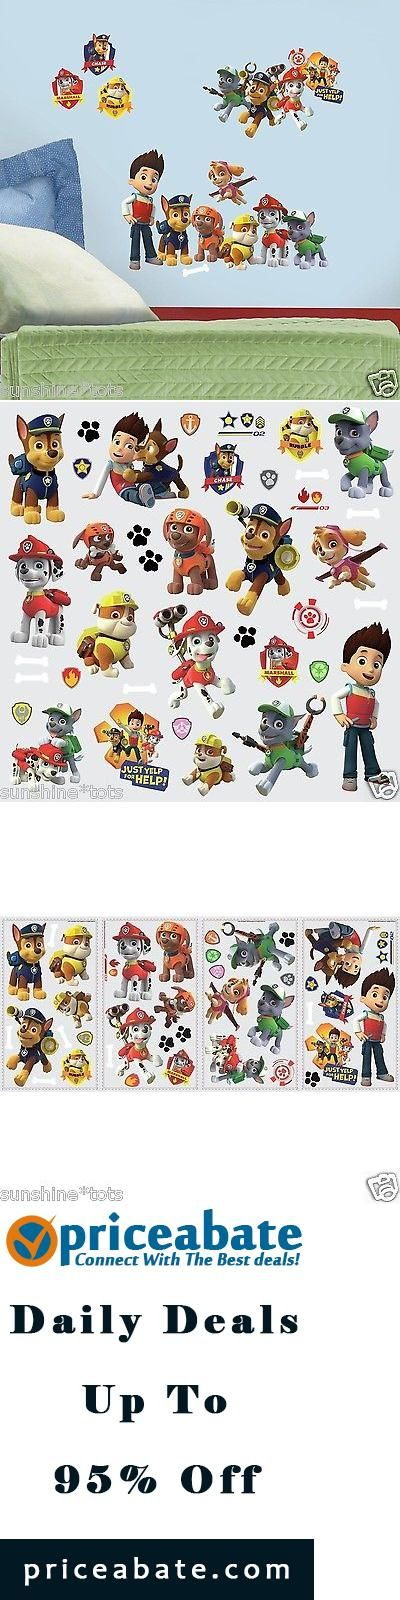 #blackfriday #blackfridaydeals #blackfridaysales Paw Patrol Wall Decals Zuma Rocky Skye Chase Marshall Rubble Figure Stickers - Buy This Item Now For Only: $13.99